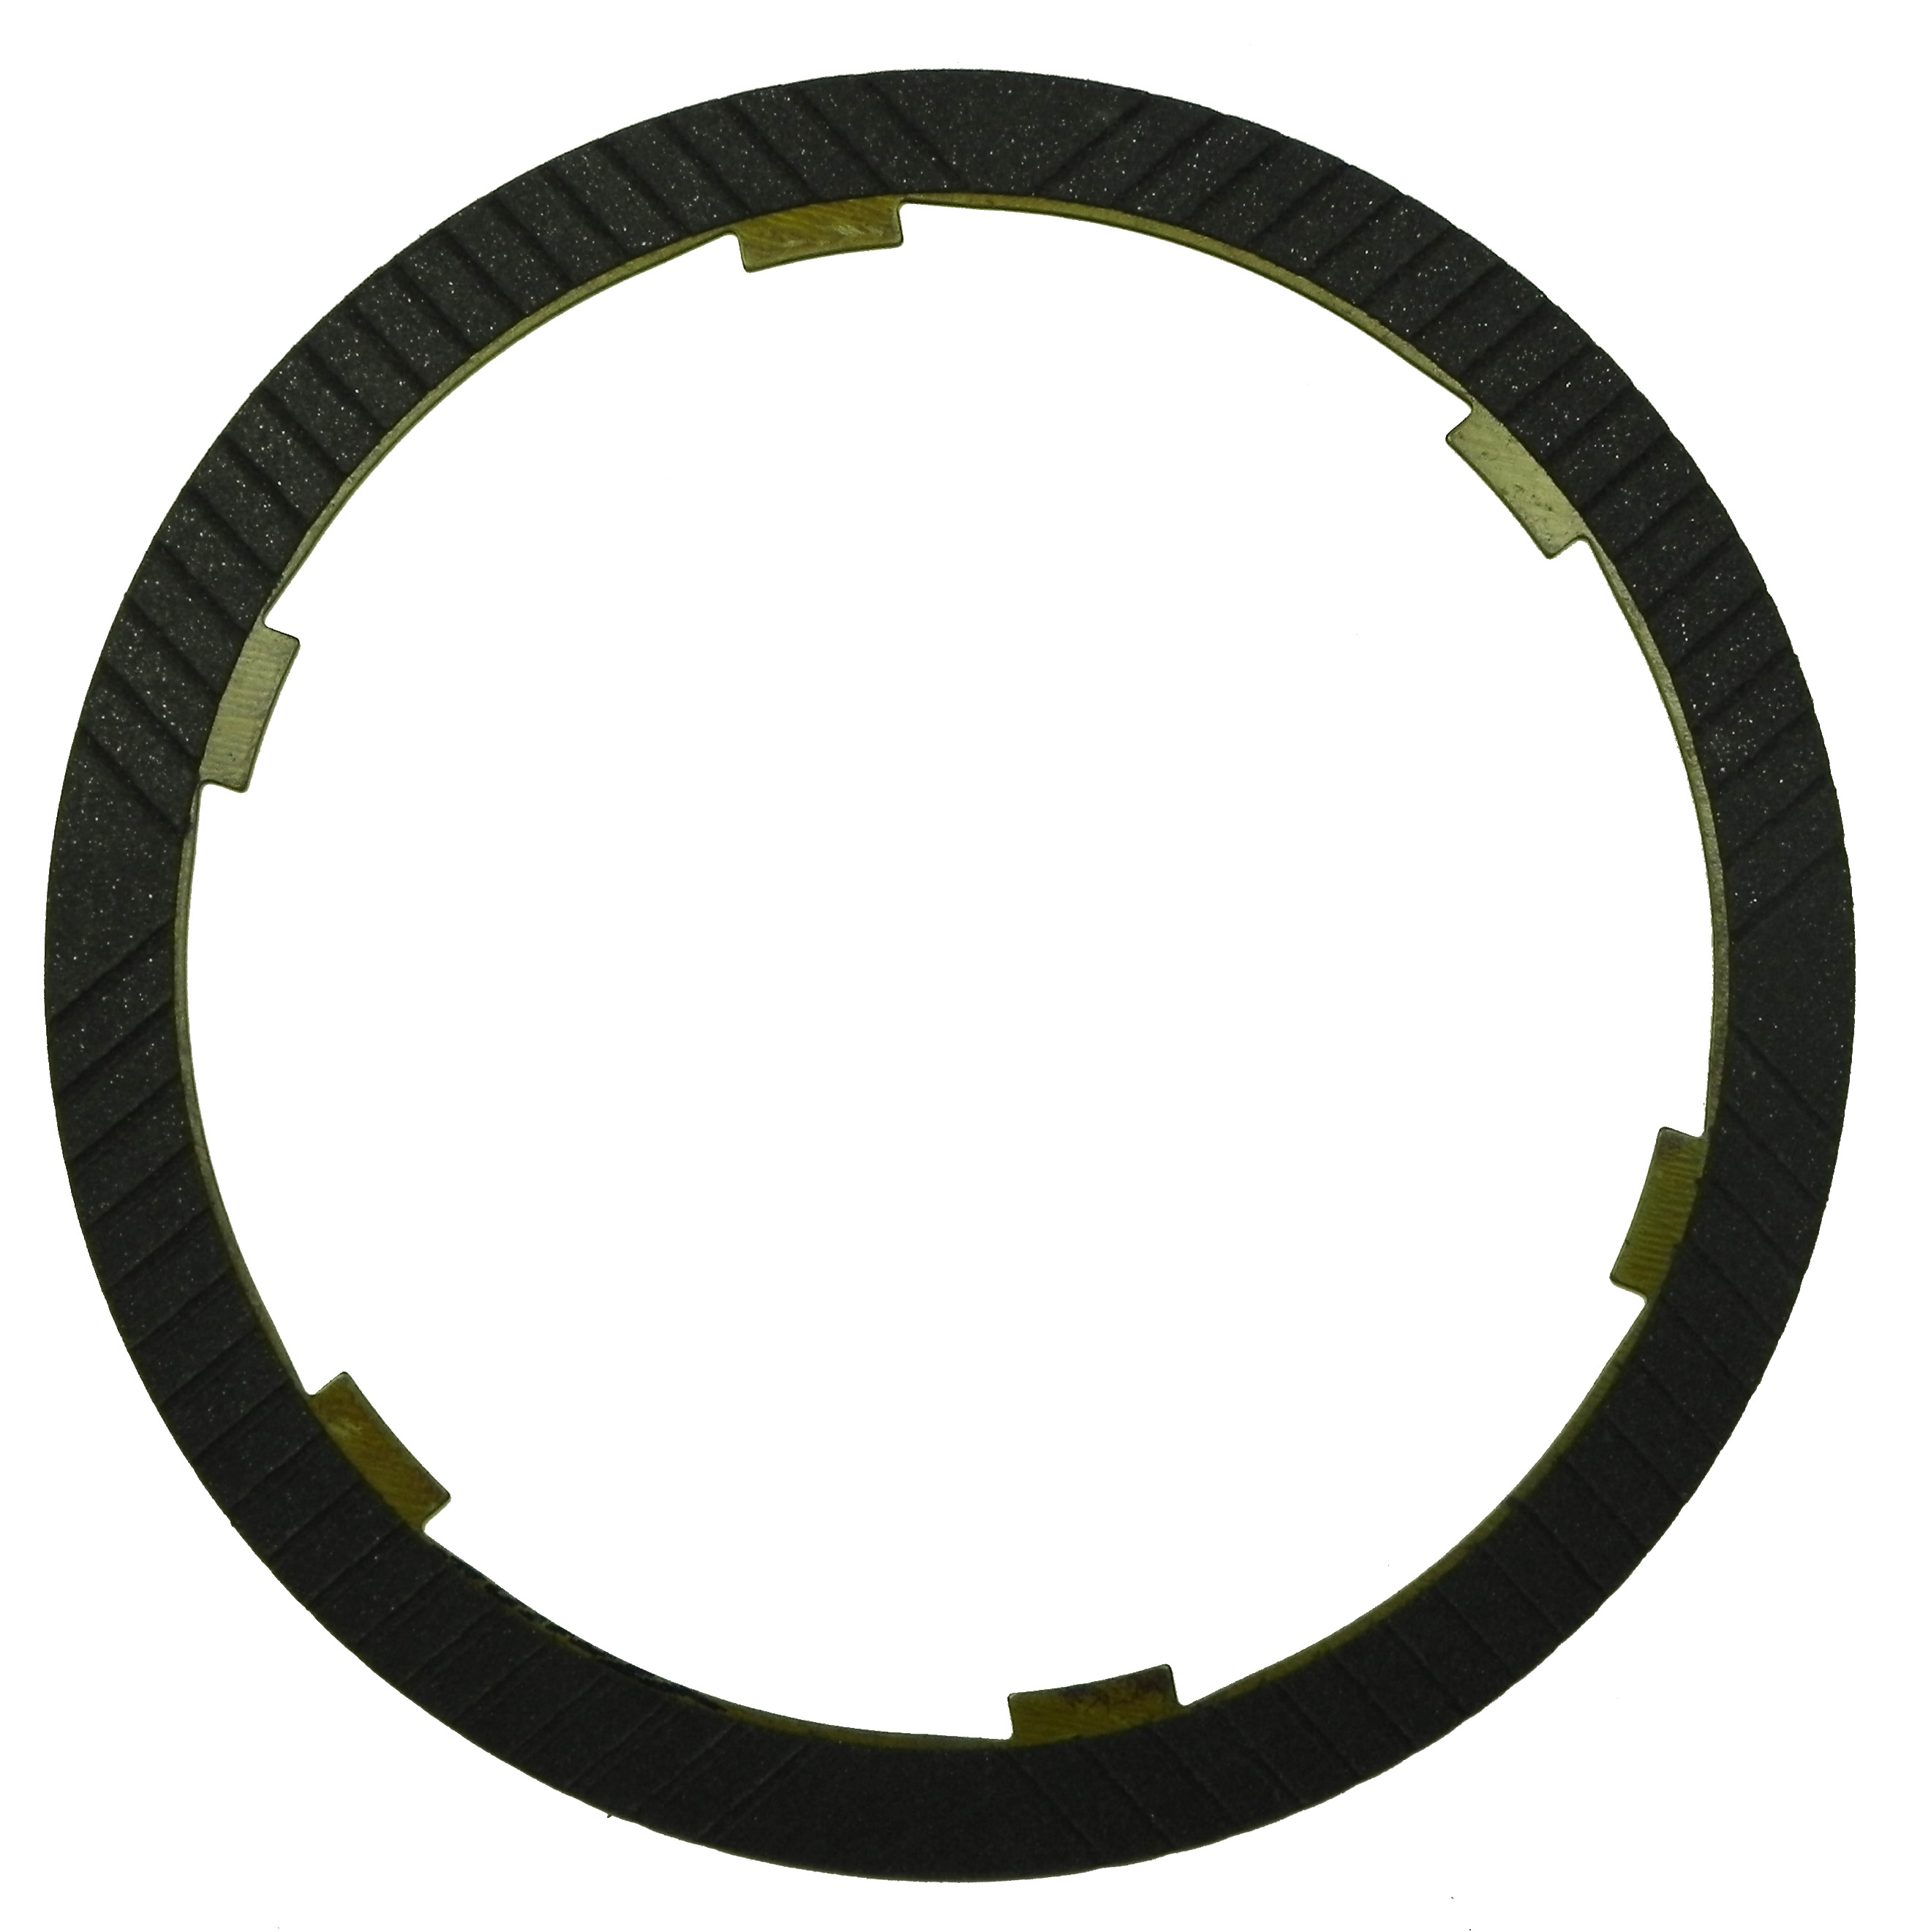 R558155 | 1998-ON Friction Clutch Plate High Energy Intermediate Single Sided, ID Spline High Energy